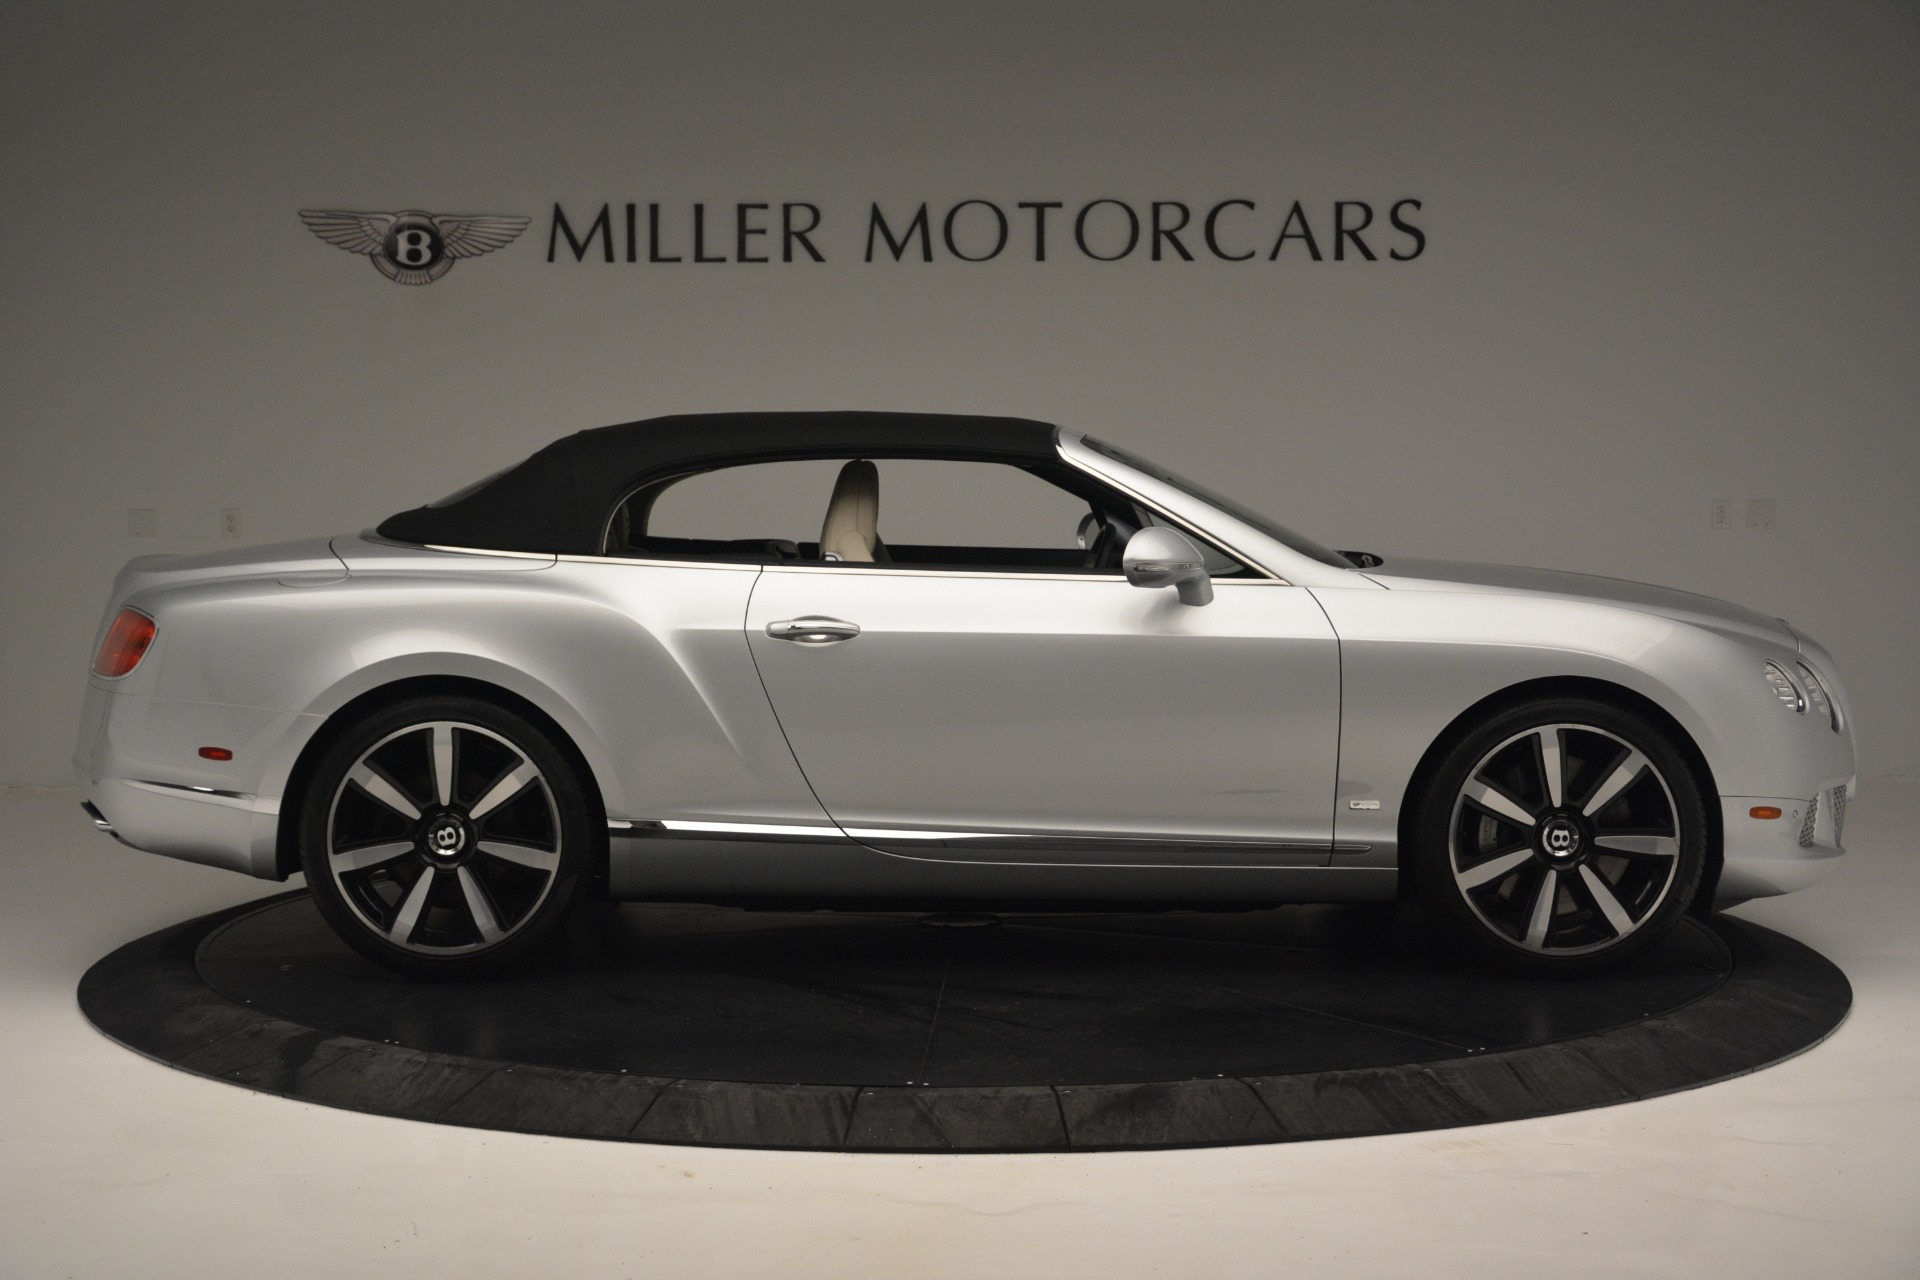 Used 2013 Bentley Continental GT W12 Le Mans Edition For Sale In Greenwich, CT 2519_p15